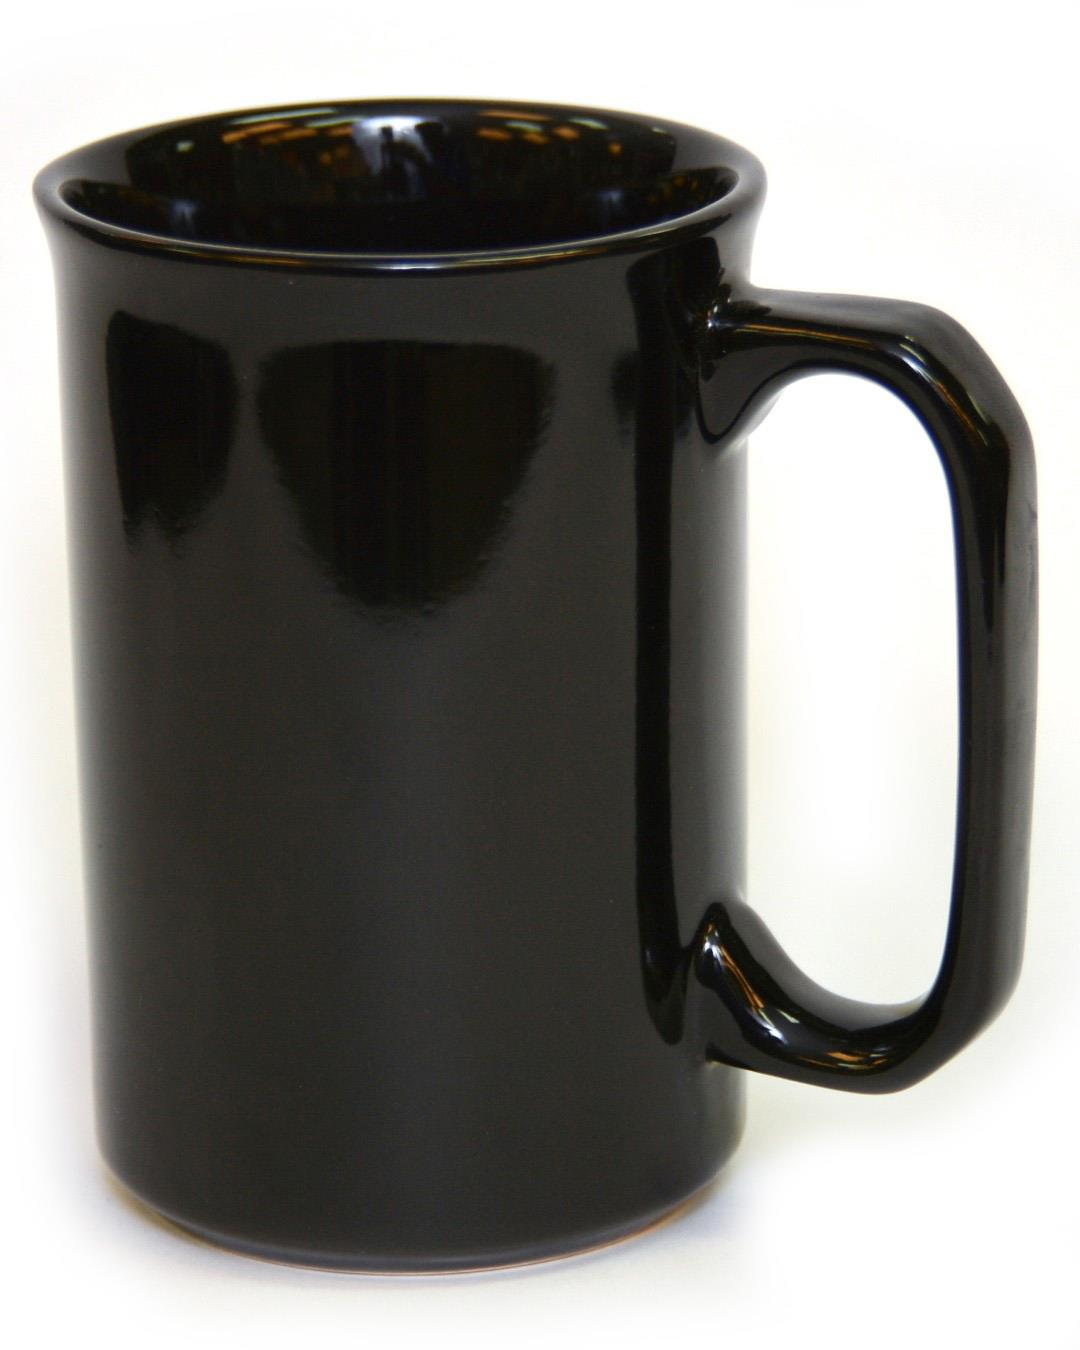 12 Ounce Ceramic Mug - Black